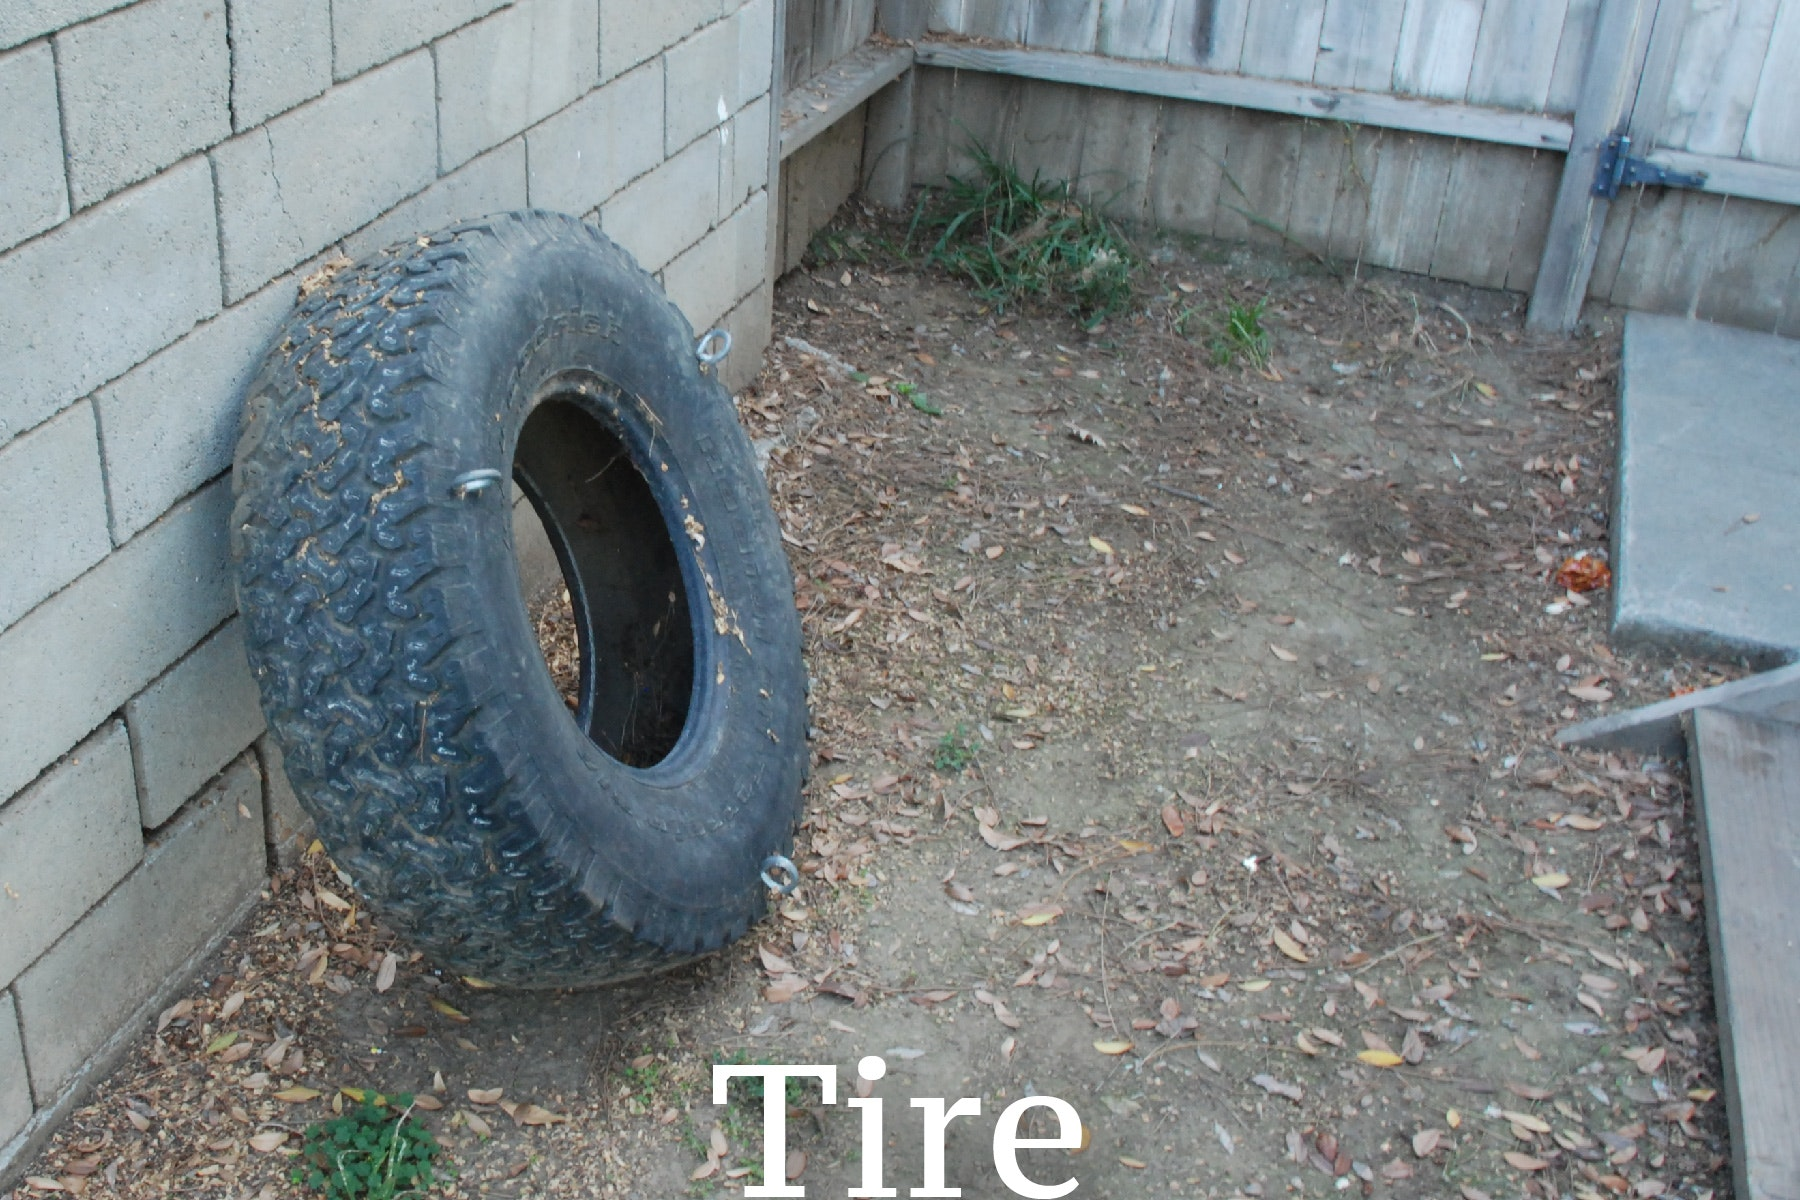 May contain: wheel, machine, tire, and car wheel